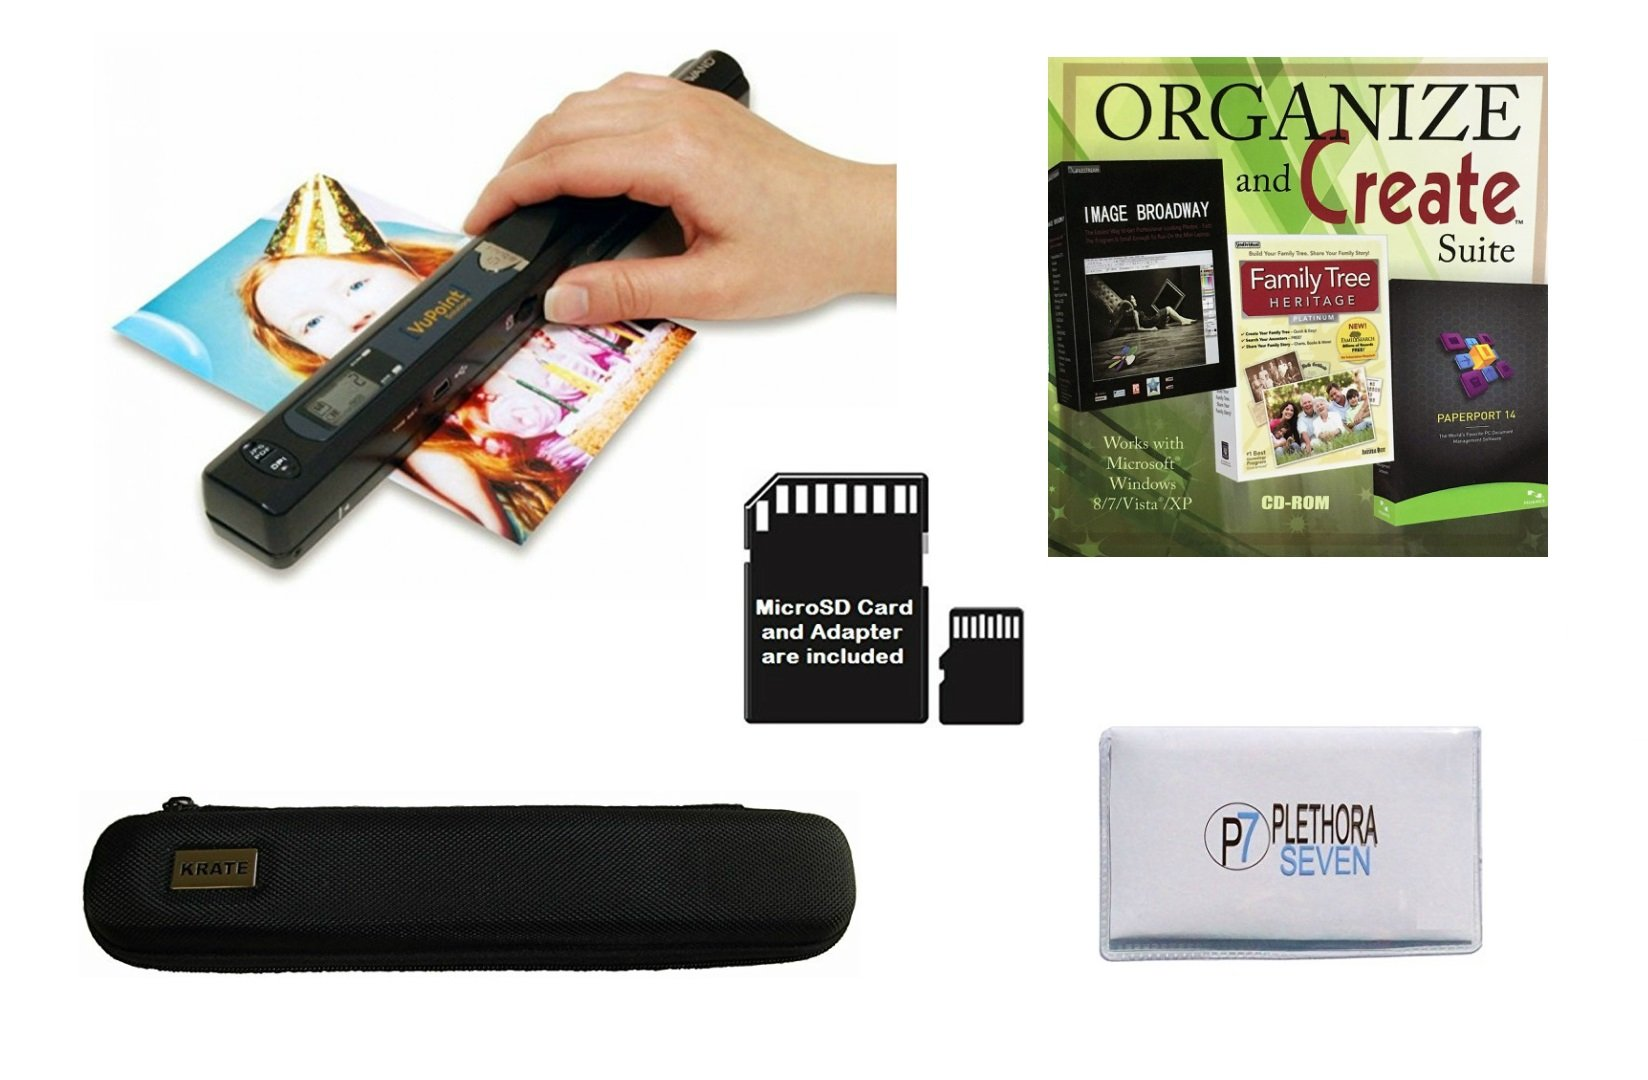 VuPoint ST415 Handheld Magic Wand Portable Scanner Kit for Document & Image with Protective Carrying Case, 8GB Micro SD Card, Bonus Software Suite (PaperPort 14, Image Broadway, Family Tree Heritage)